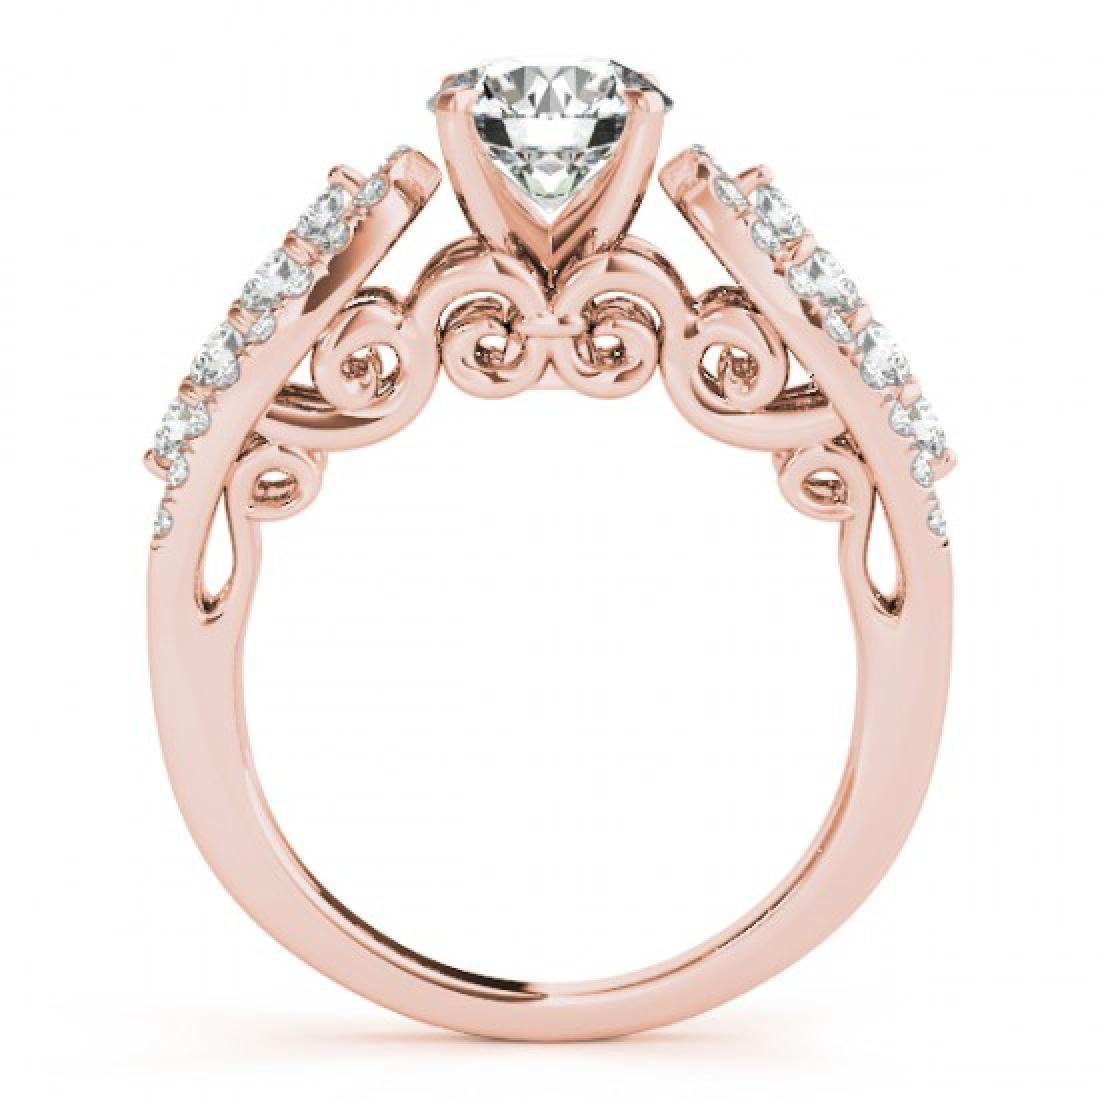 1.7 CTW Certified VS/SI Diamond Solitaire Ring 14K Rose - 2